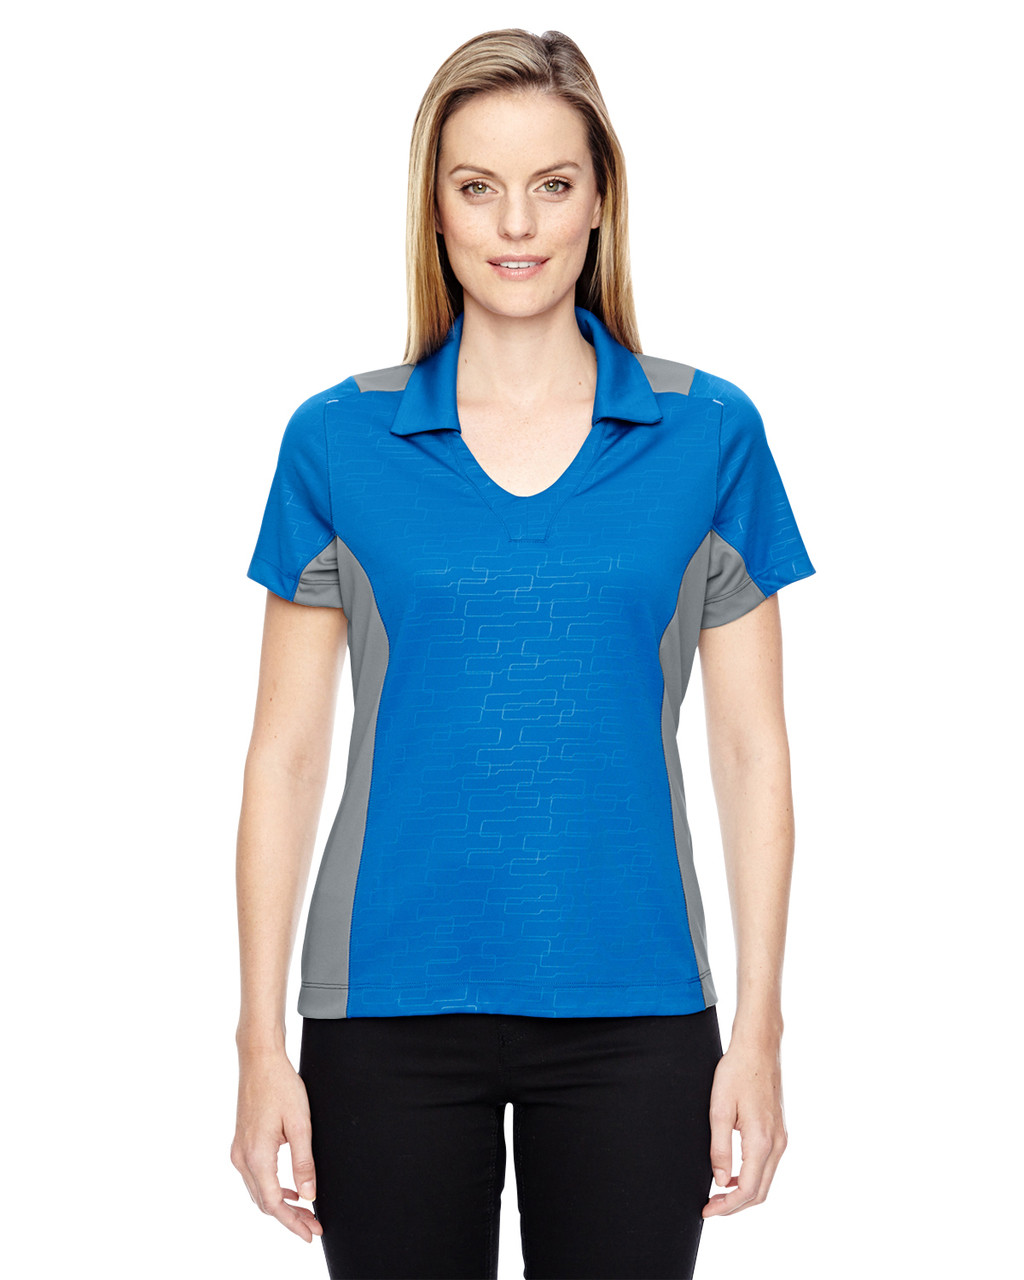 Olympic Blue - 78691 North End Sport Red Reflex UTK Performance Embossed Print Polo Shirt